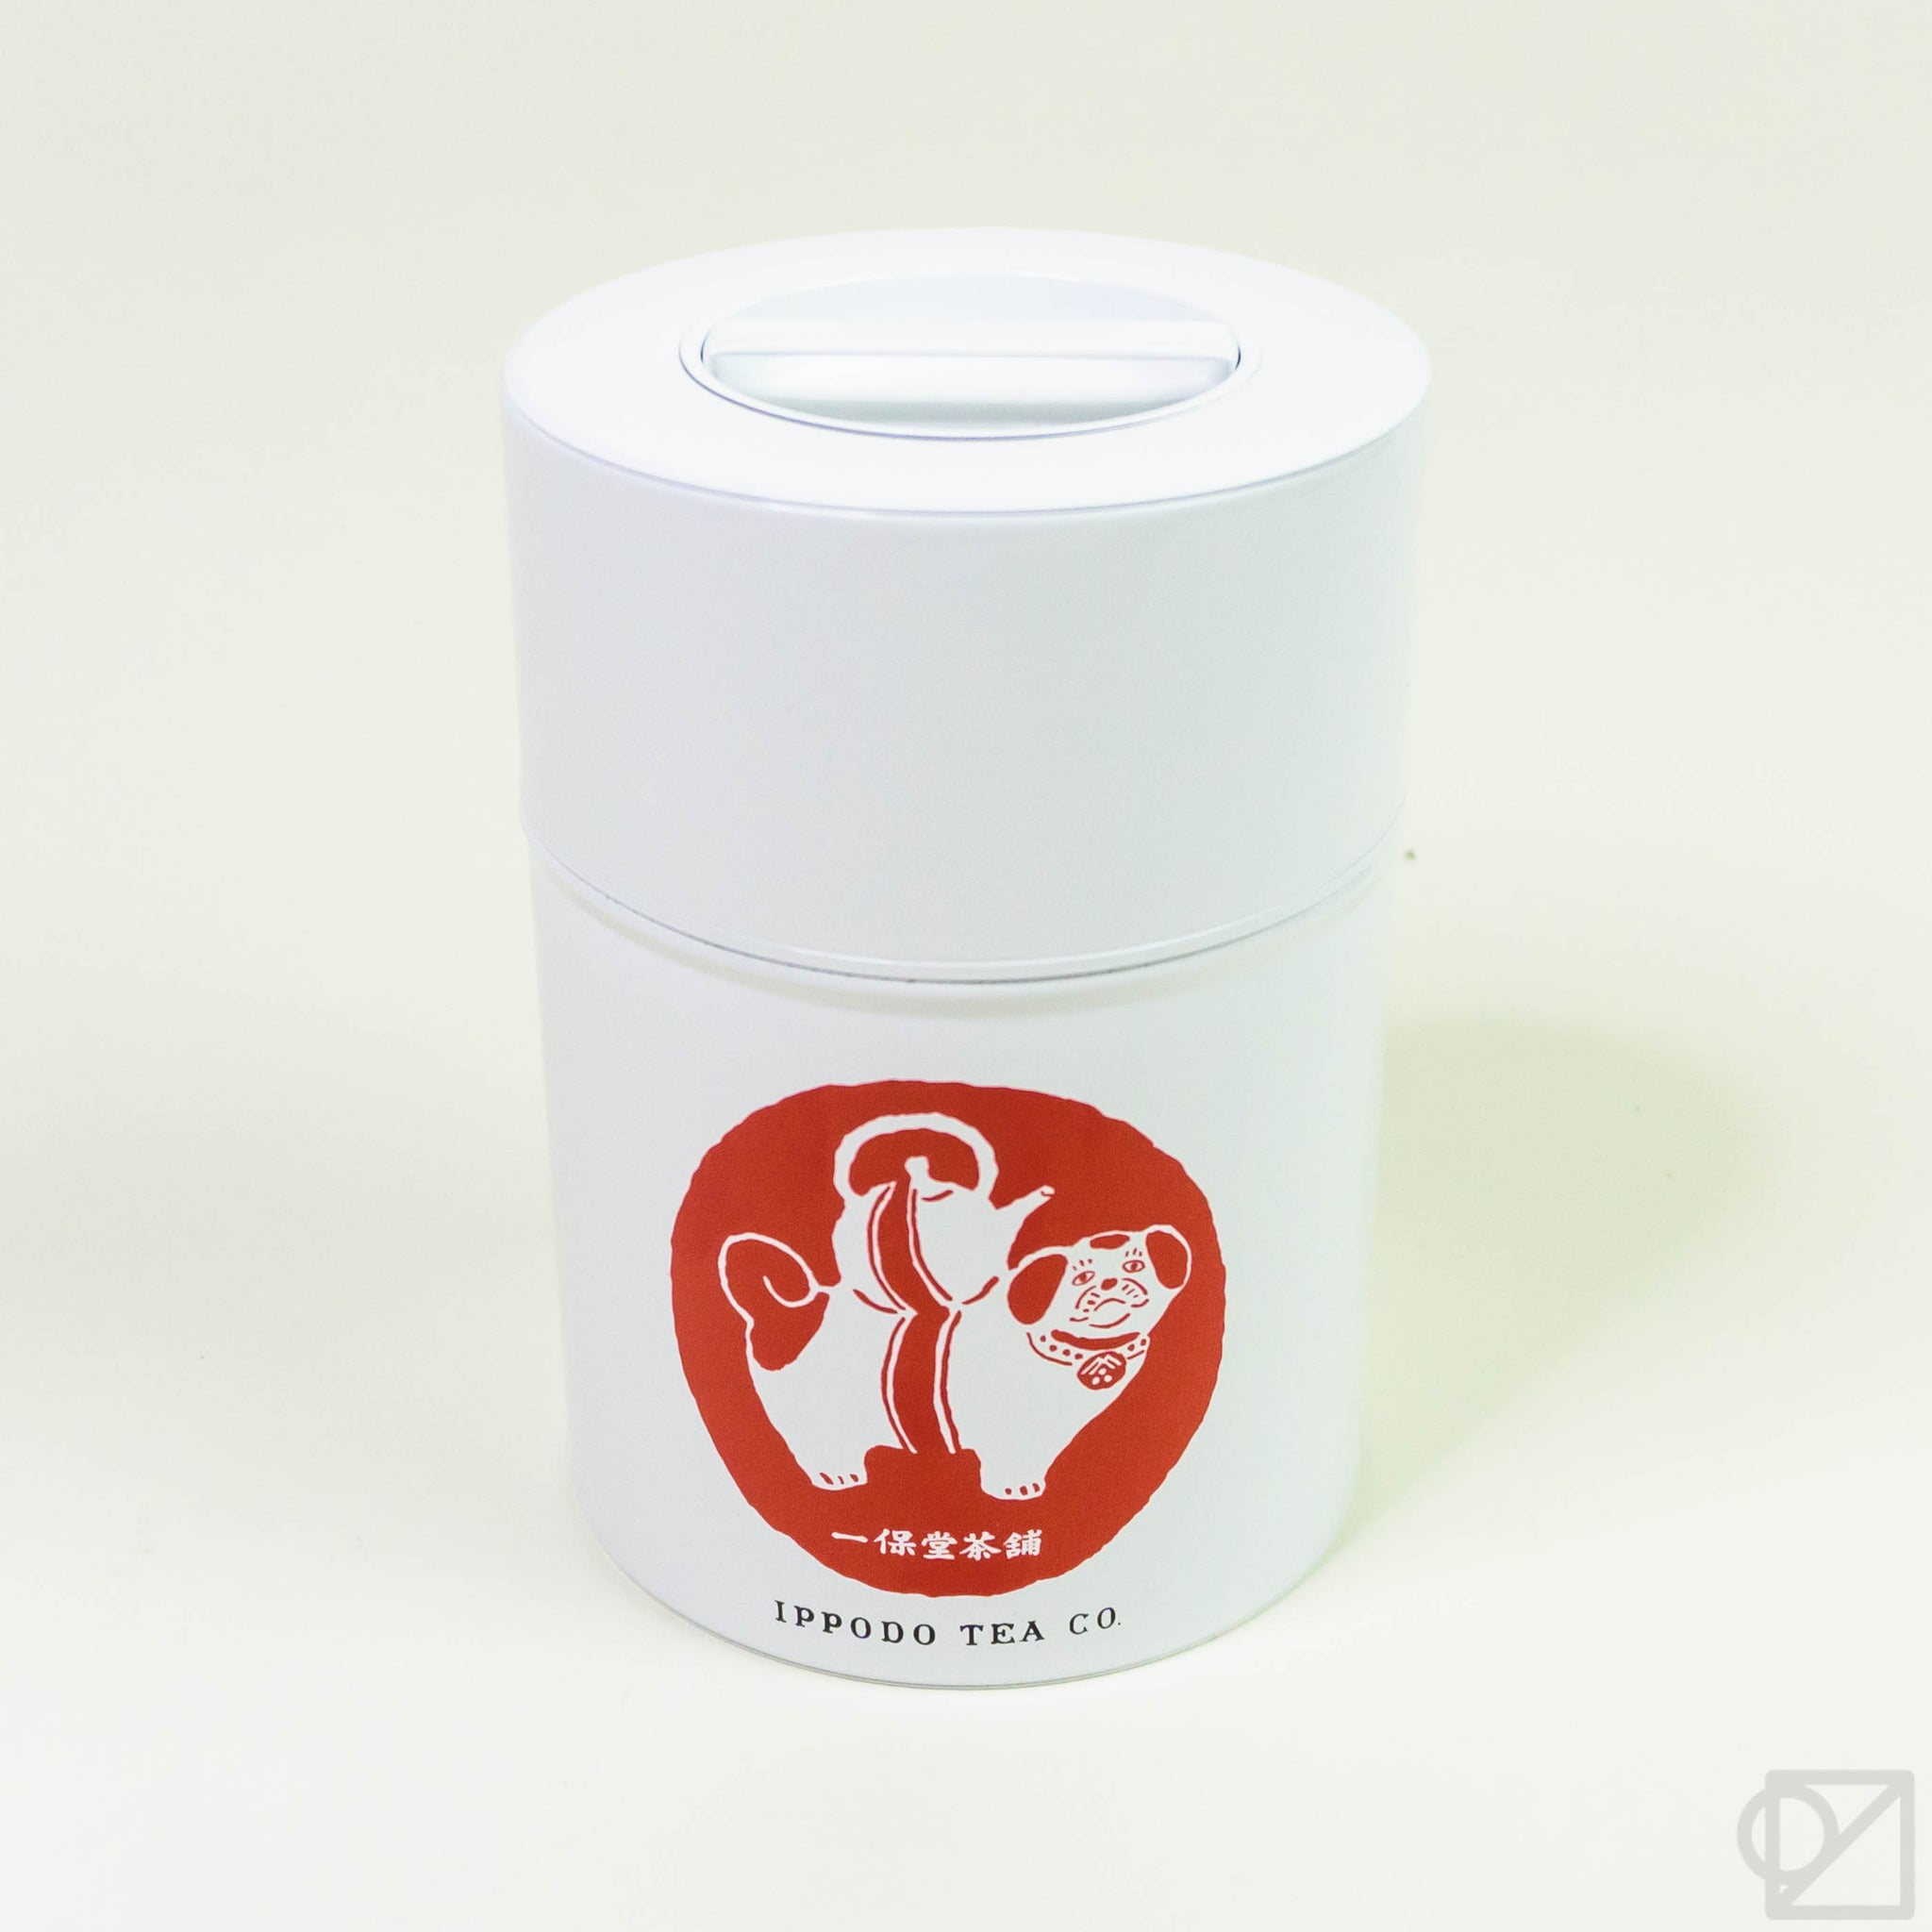 Ippodo Mugicha One-Pot Tea Bag Collector's Tin